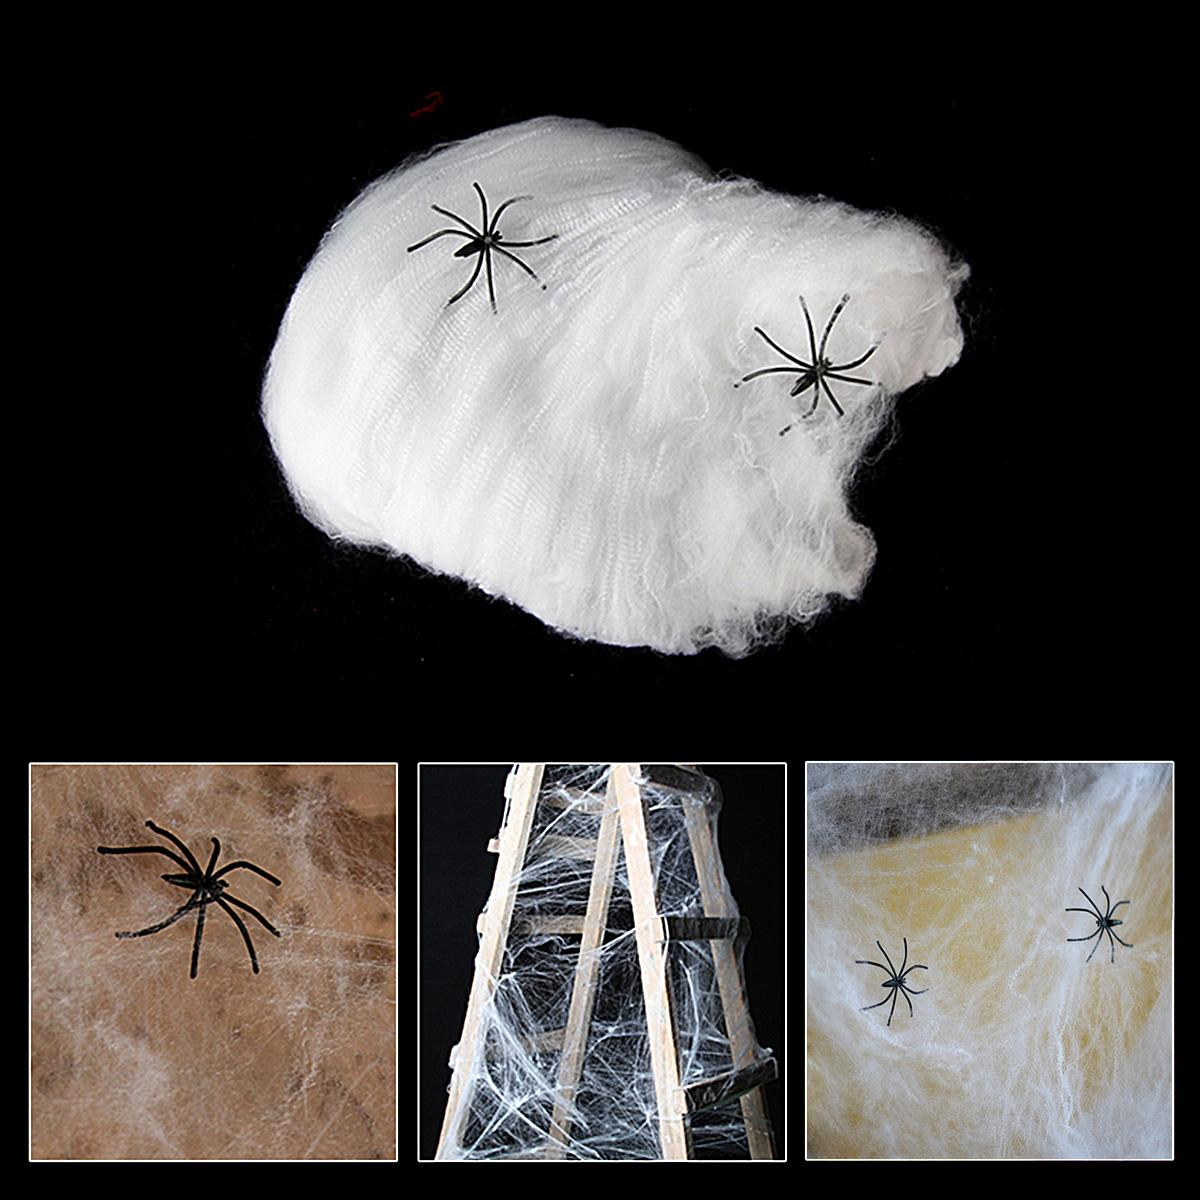 2 packs stretchable spider web with 2 spiders for halloween decorations props